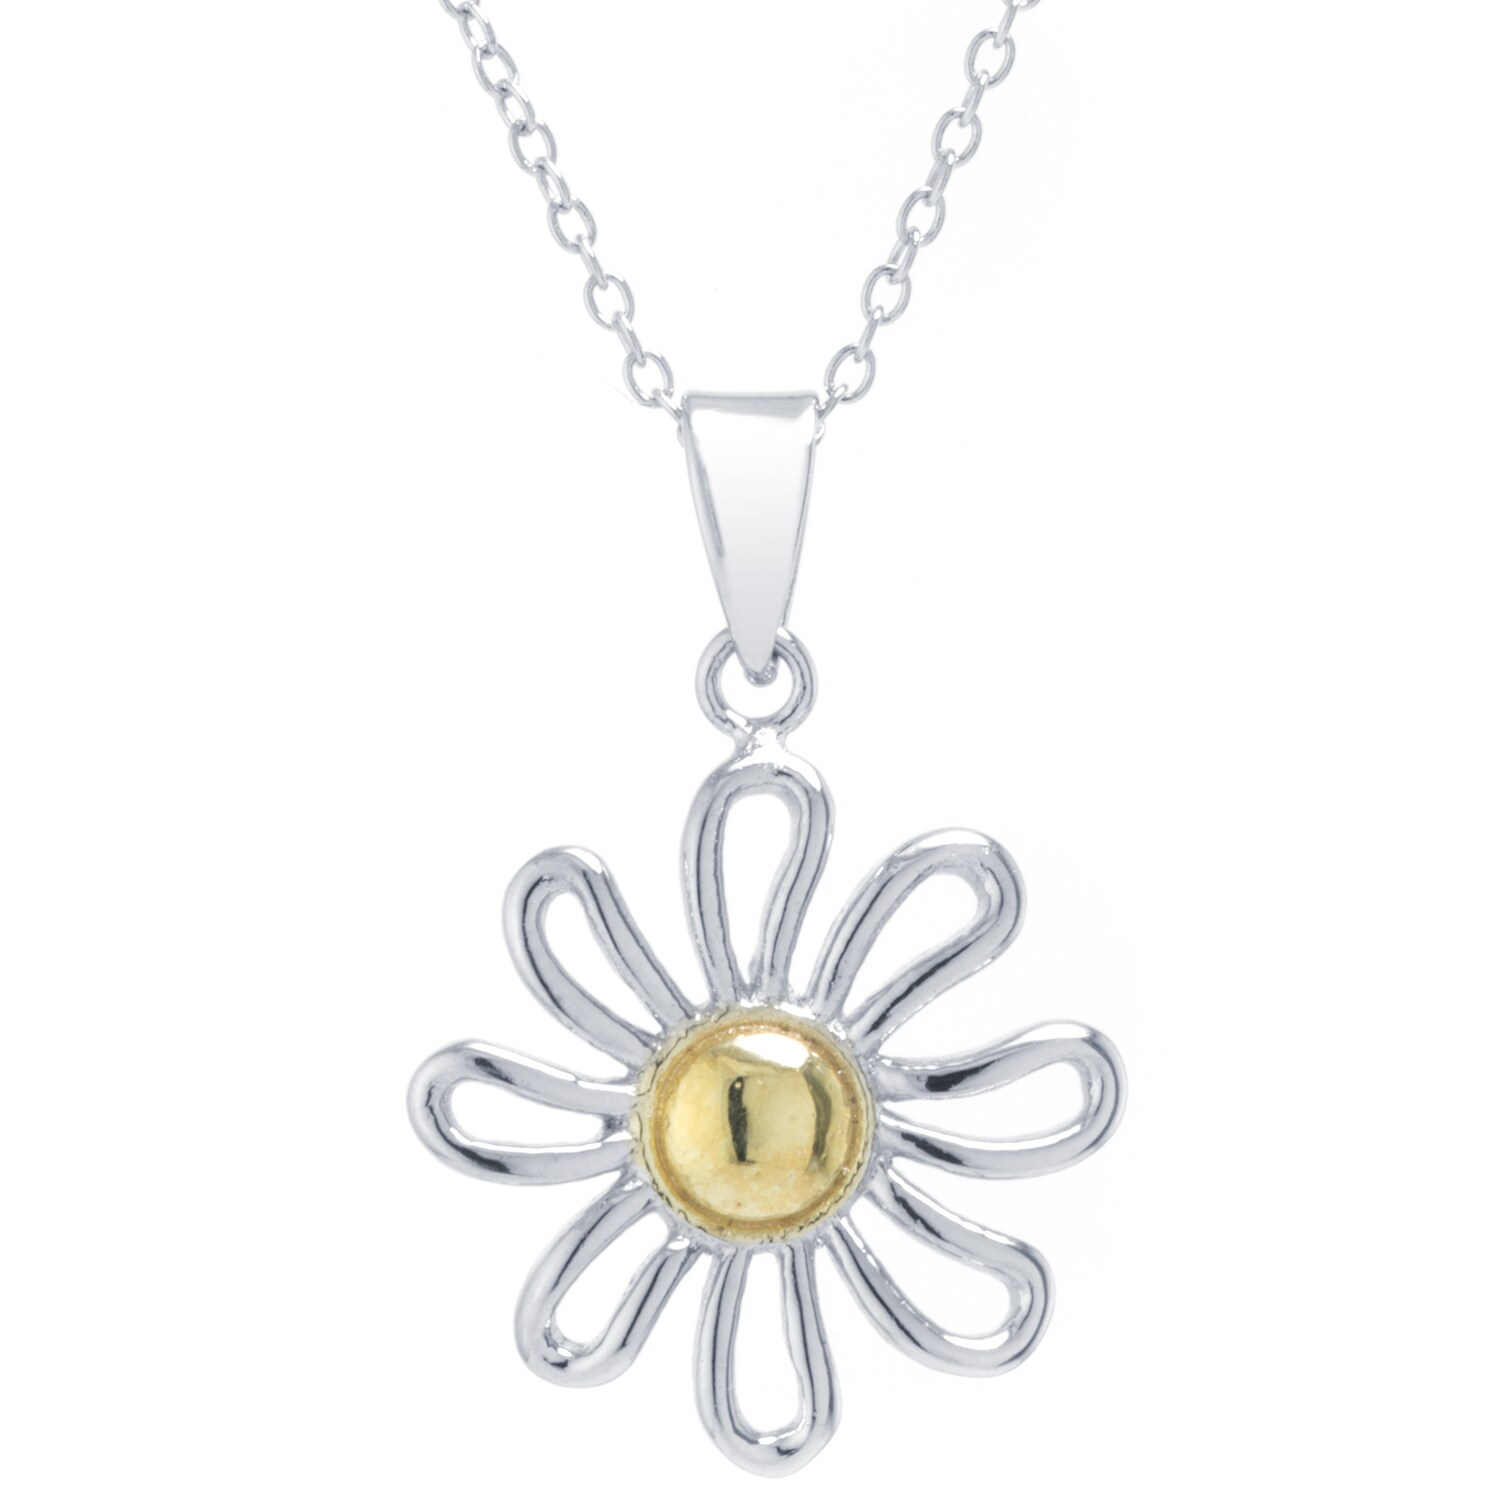 watches daisy over on necklace shipping product pendant silver free sterling jewelry orders two overstock tone